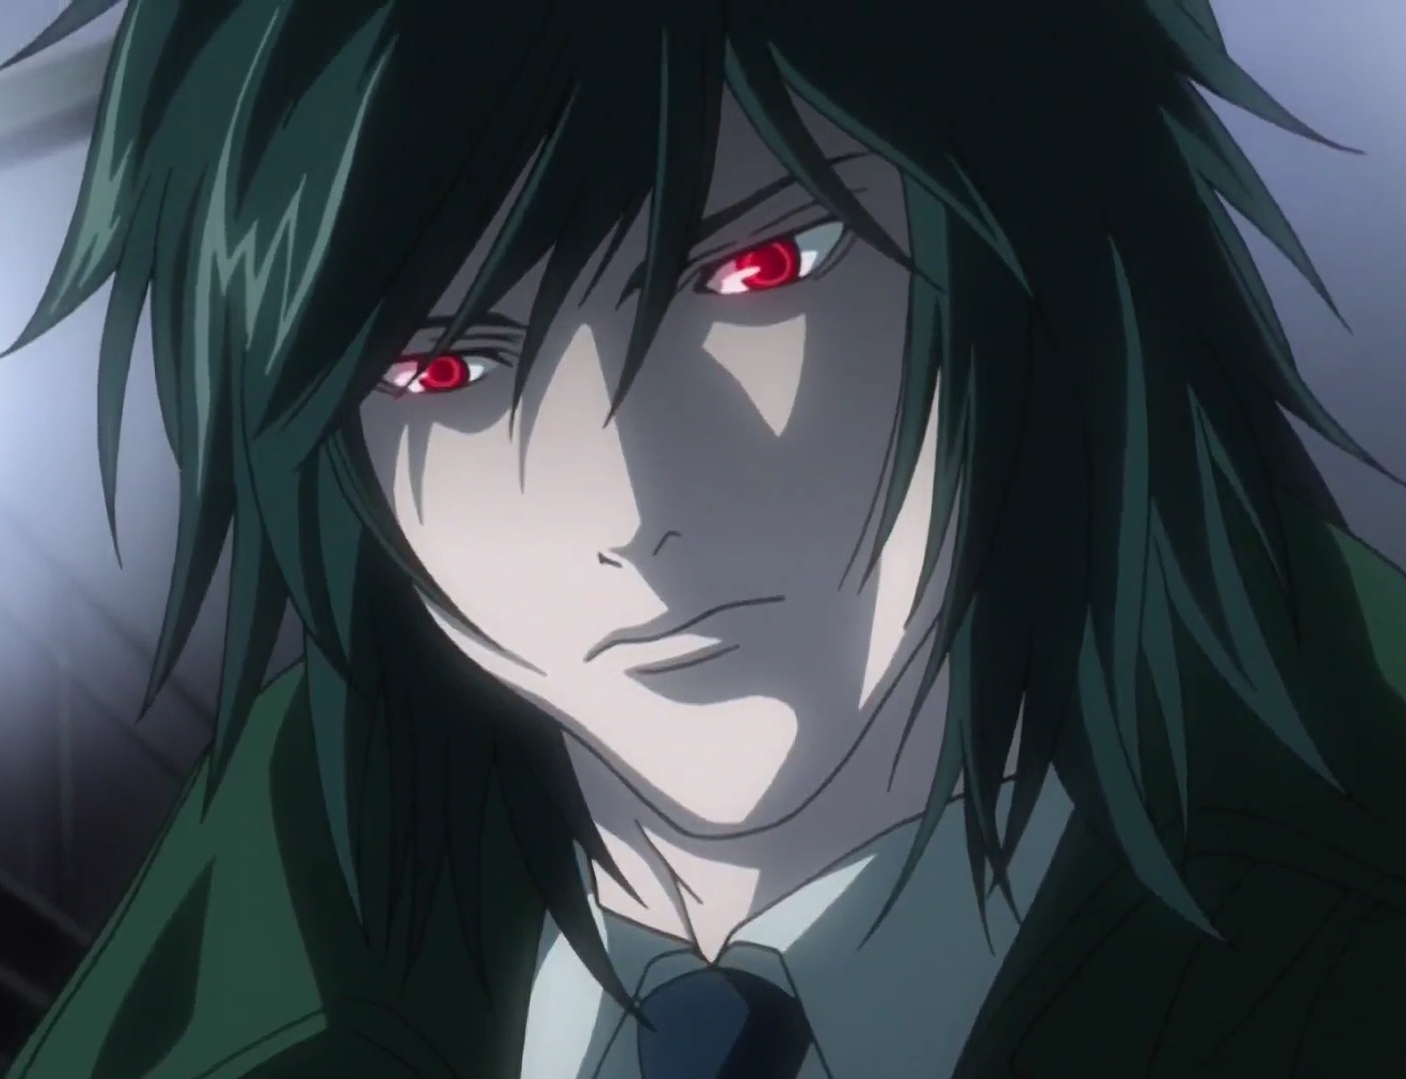 File:Mikami's Shinigami Eyes.png